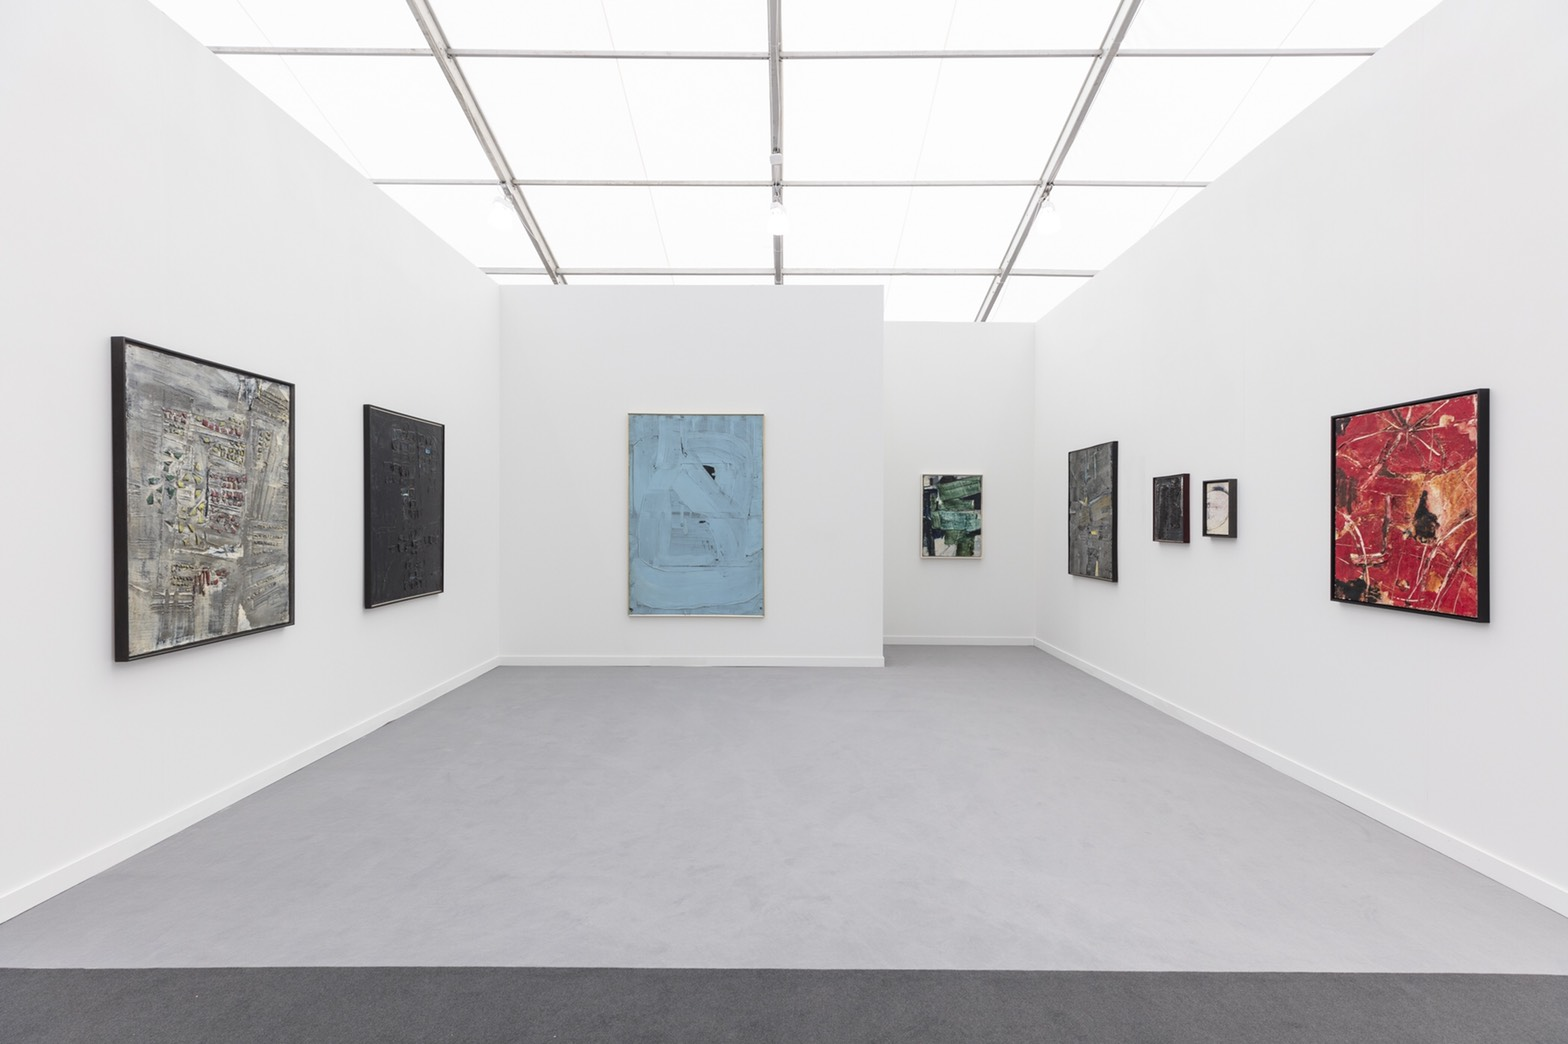 We are pleased to participate in FRIEZE ART FAIR New York with a presentation of Kukota Suda's work till 2000. For more information, please visit  https://frieze.com/fairs/frieze-new-york . Booth: S16  Please visit  https://www.artsy.net/gallery-38  to see all the images.